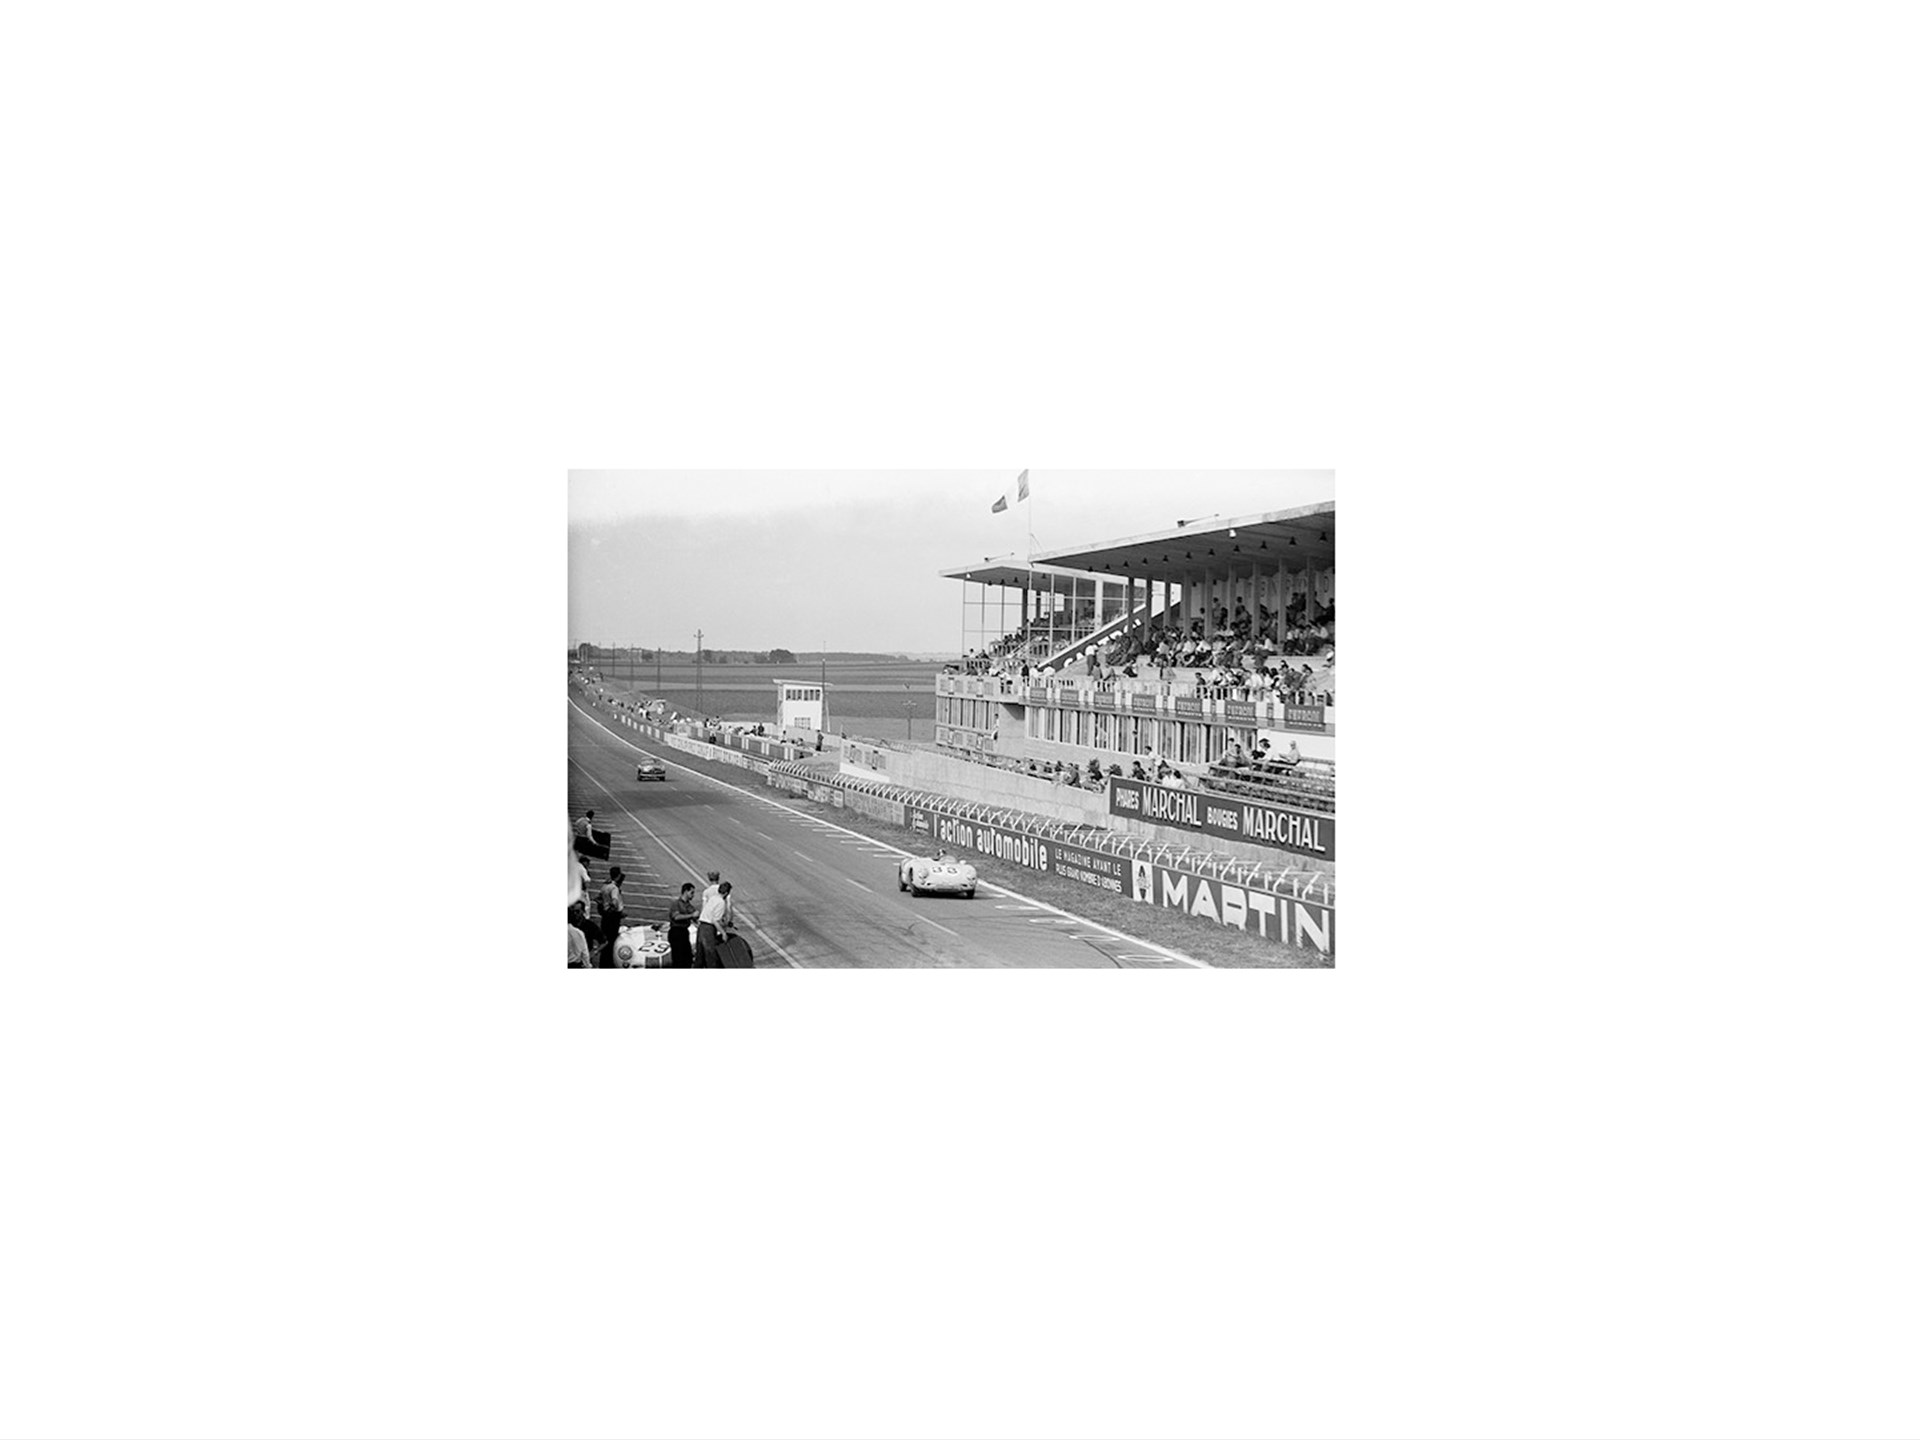 The 550 Spyder at the 12 Hours of Reims in 1956 where it finished 3rd in class.